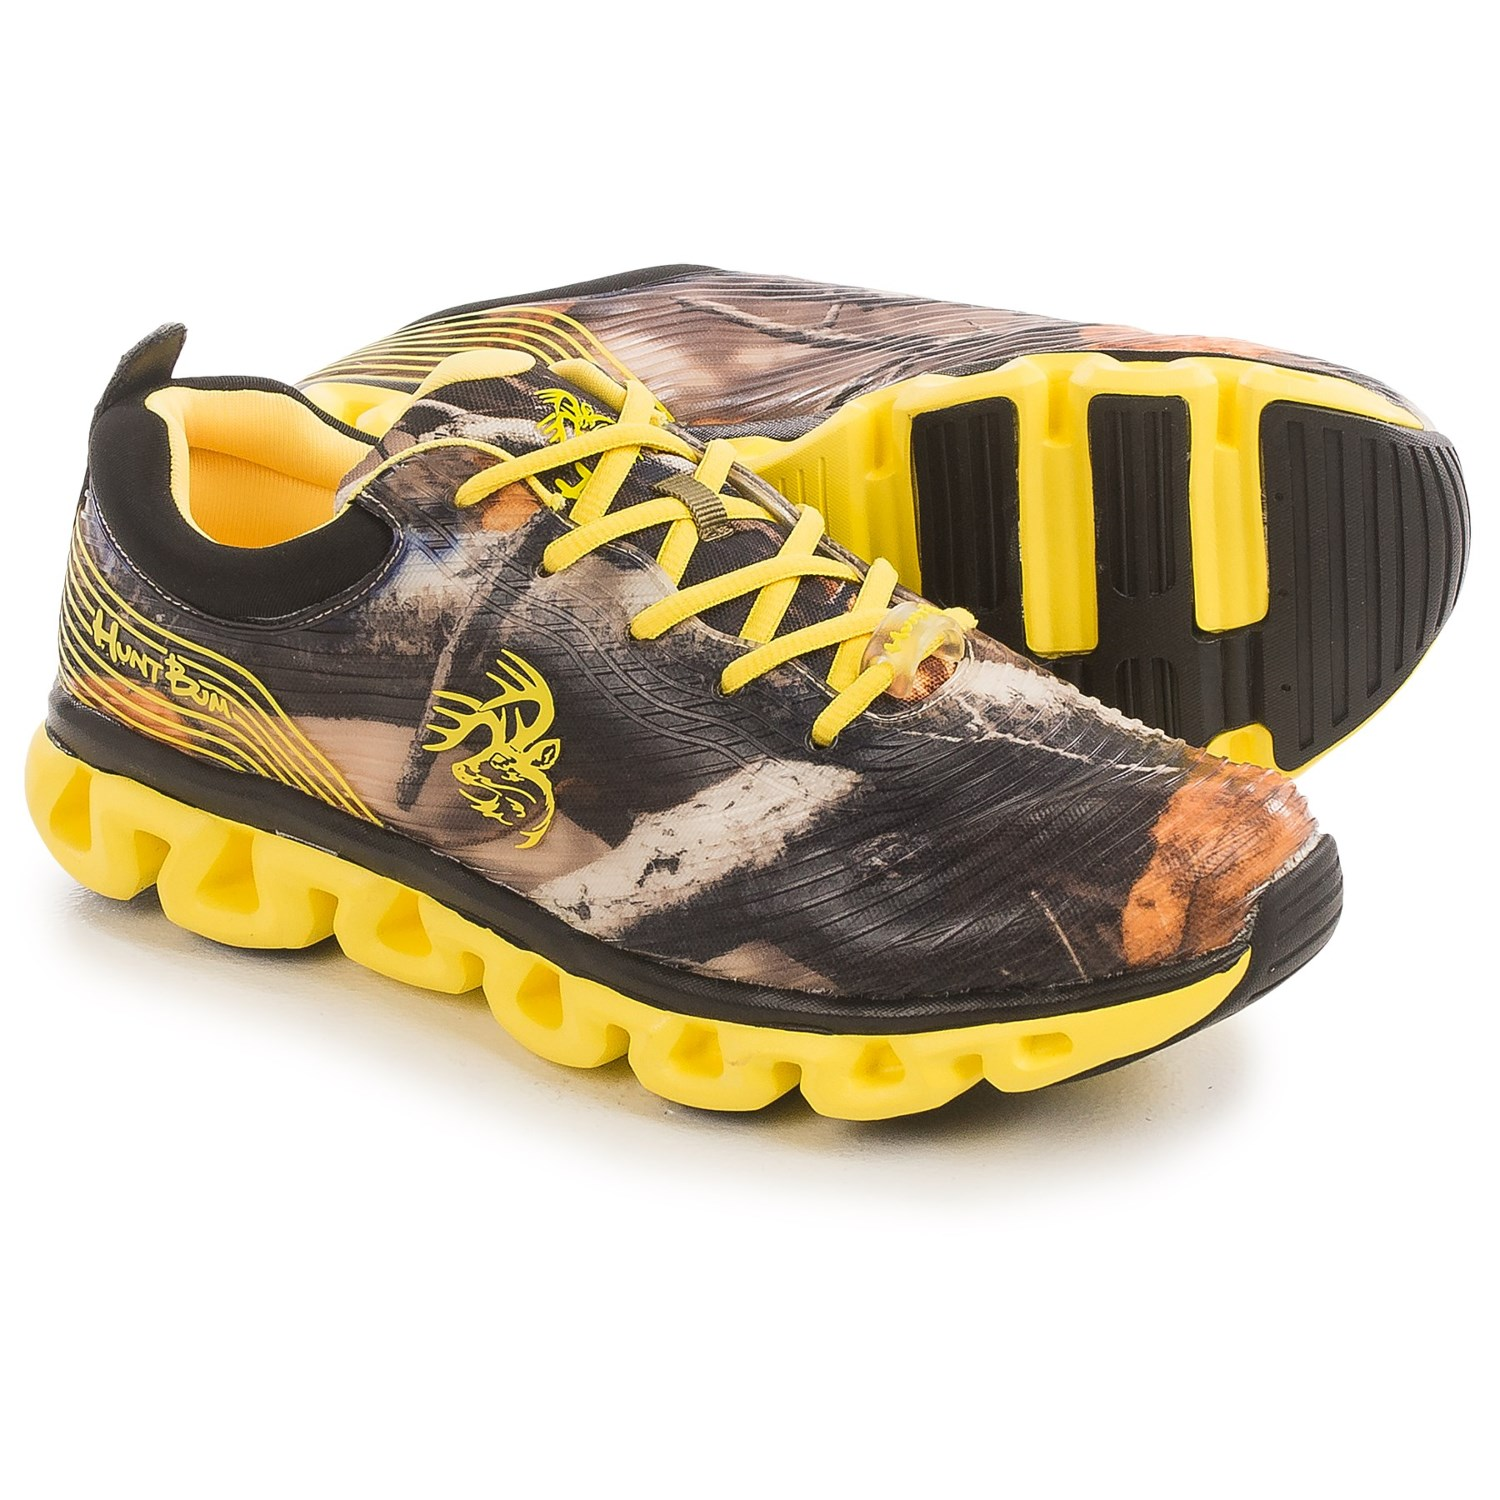 realtree outfitters hunt bum camo hiking shoes for